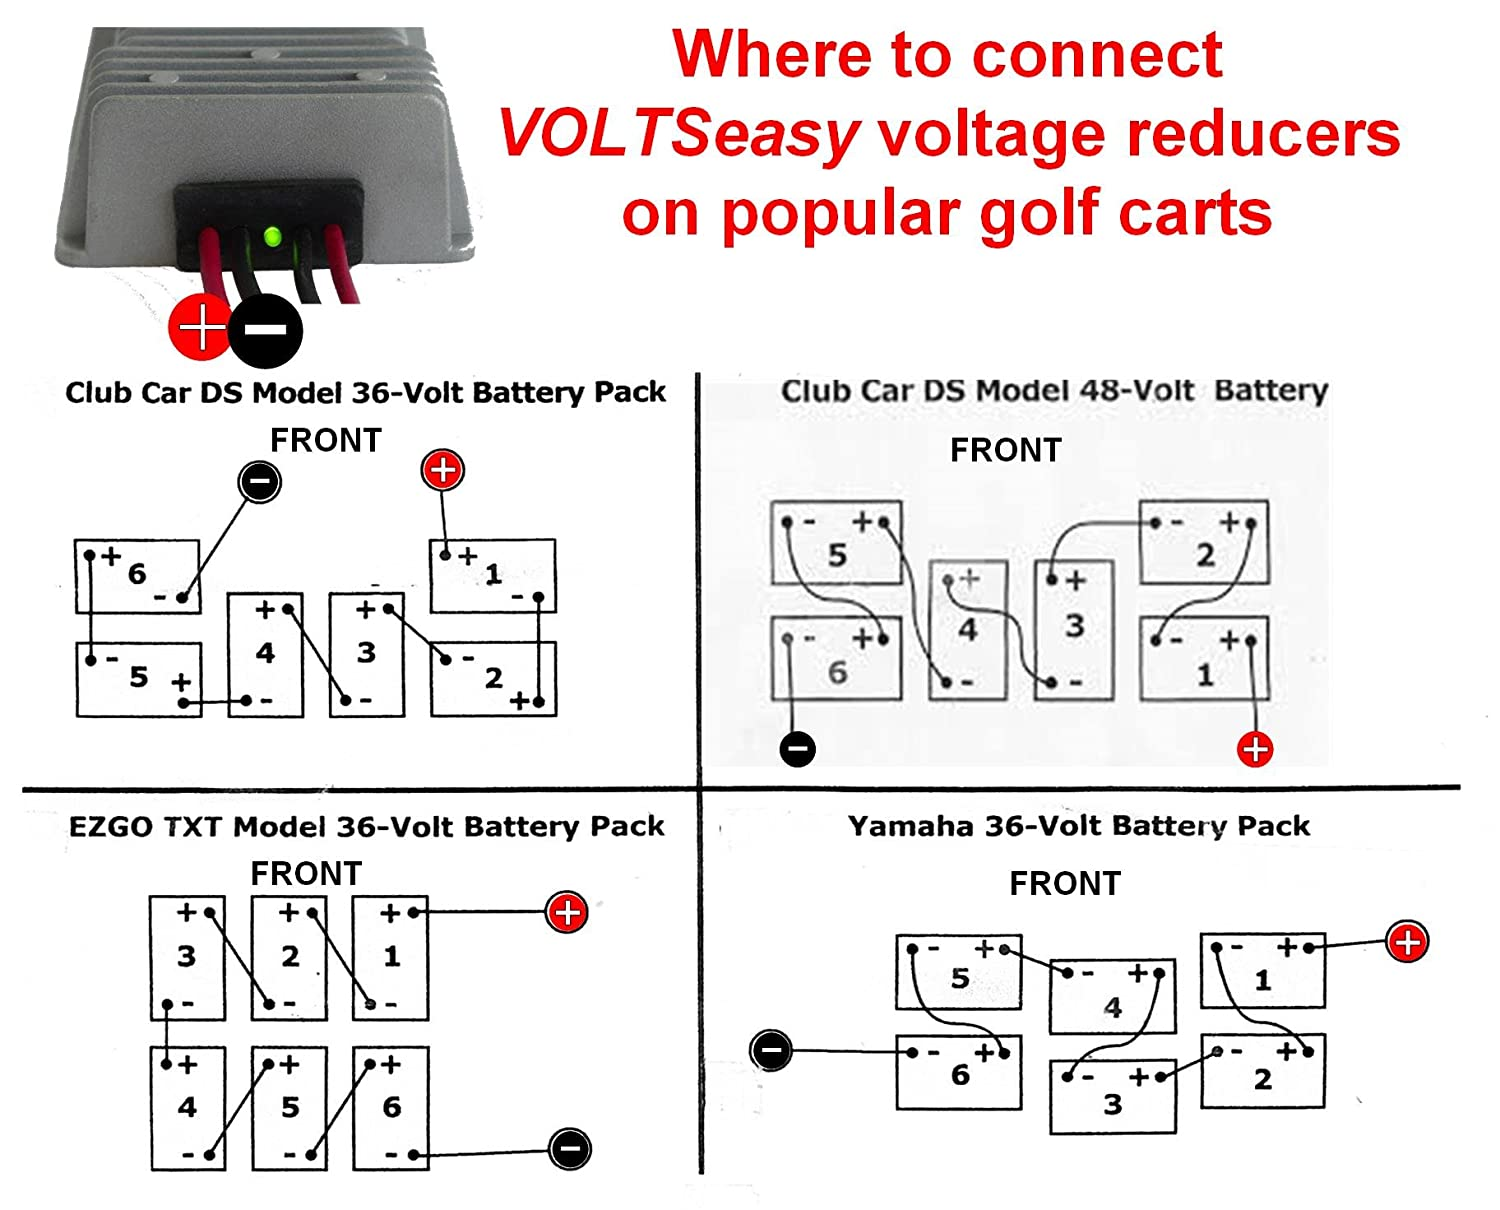 Amazon.com : Golf Cart VOLTSeasy Voltage Reducer for 36 and 48-Volt on 12 volt starter wiring diagram, viair onboard air systems wiring diagram, 48 volt wiring-diagram reducer, club car micro switch diagram, 48 volt solenoid wiring diagram, club car parts diagram, club car v glide diagram, yamaha 48 volt wiring diagram, golf cart wiring diagram, ezgo 36 volt battery diagram, 48 volt cushman wiring diagram, 36 volt wiring diagram, taylor dunn electric cart wiring diagram, club car schematic diagram, club car electrical diagram, isuzu npr tail light wiring diagram, club cart diagram, tekonsha voyager brake controller wiring diagram, club car forward reverse switch diagram, club car engine diagram,